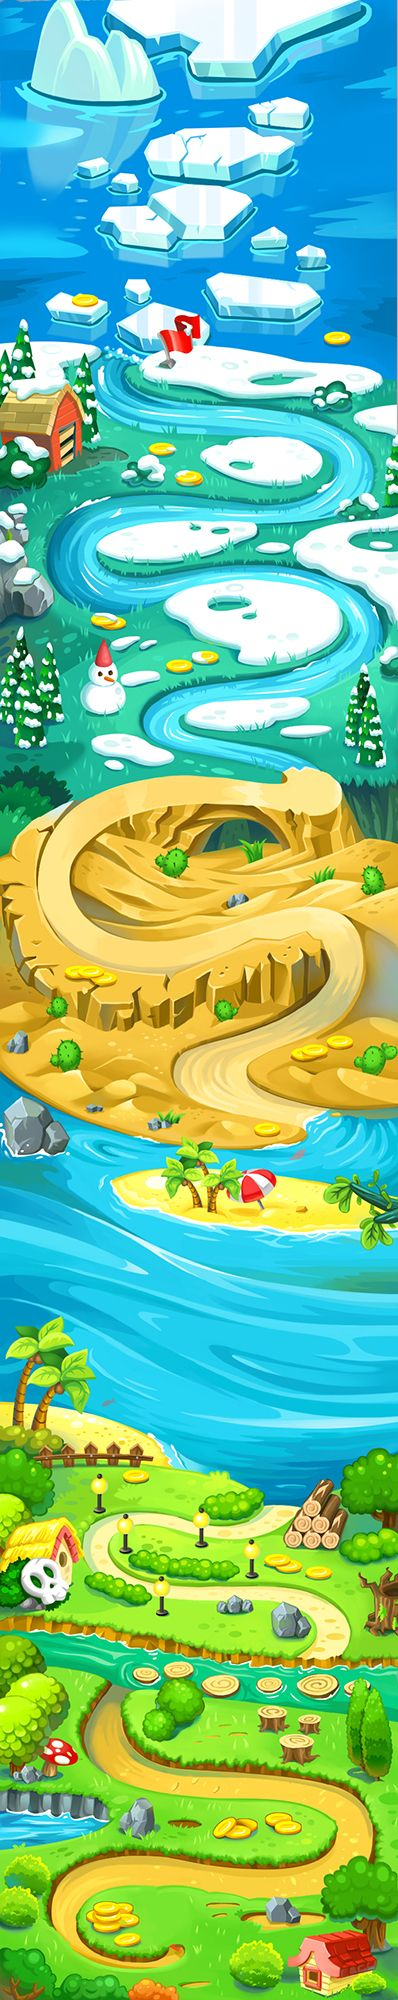 Map without using in game by maggie wang, via Behance